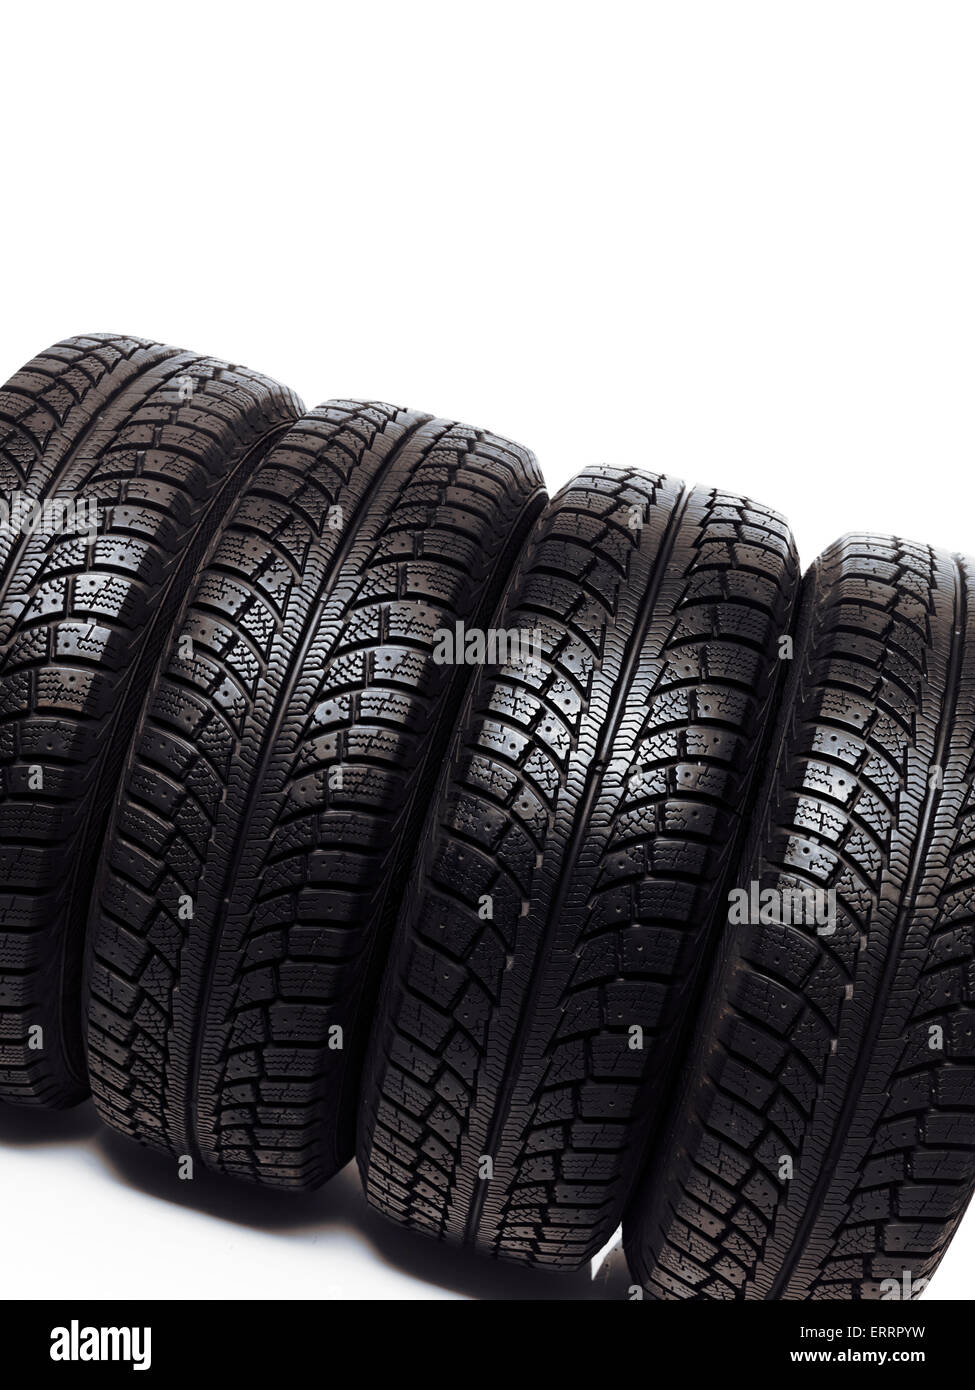 Set of winter tires, snow tyres isolated on white background - Stock Image